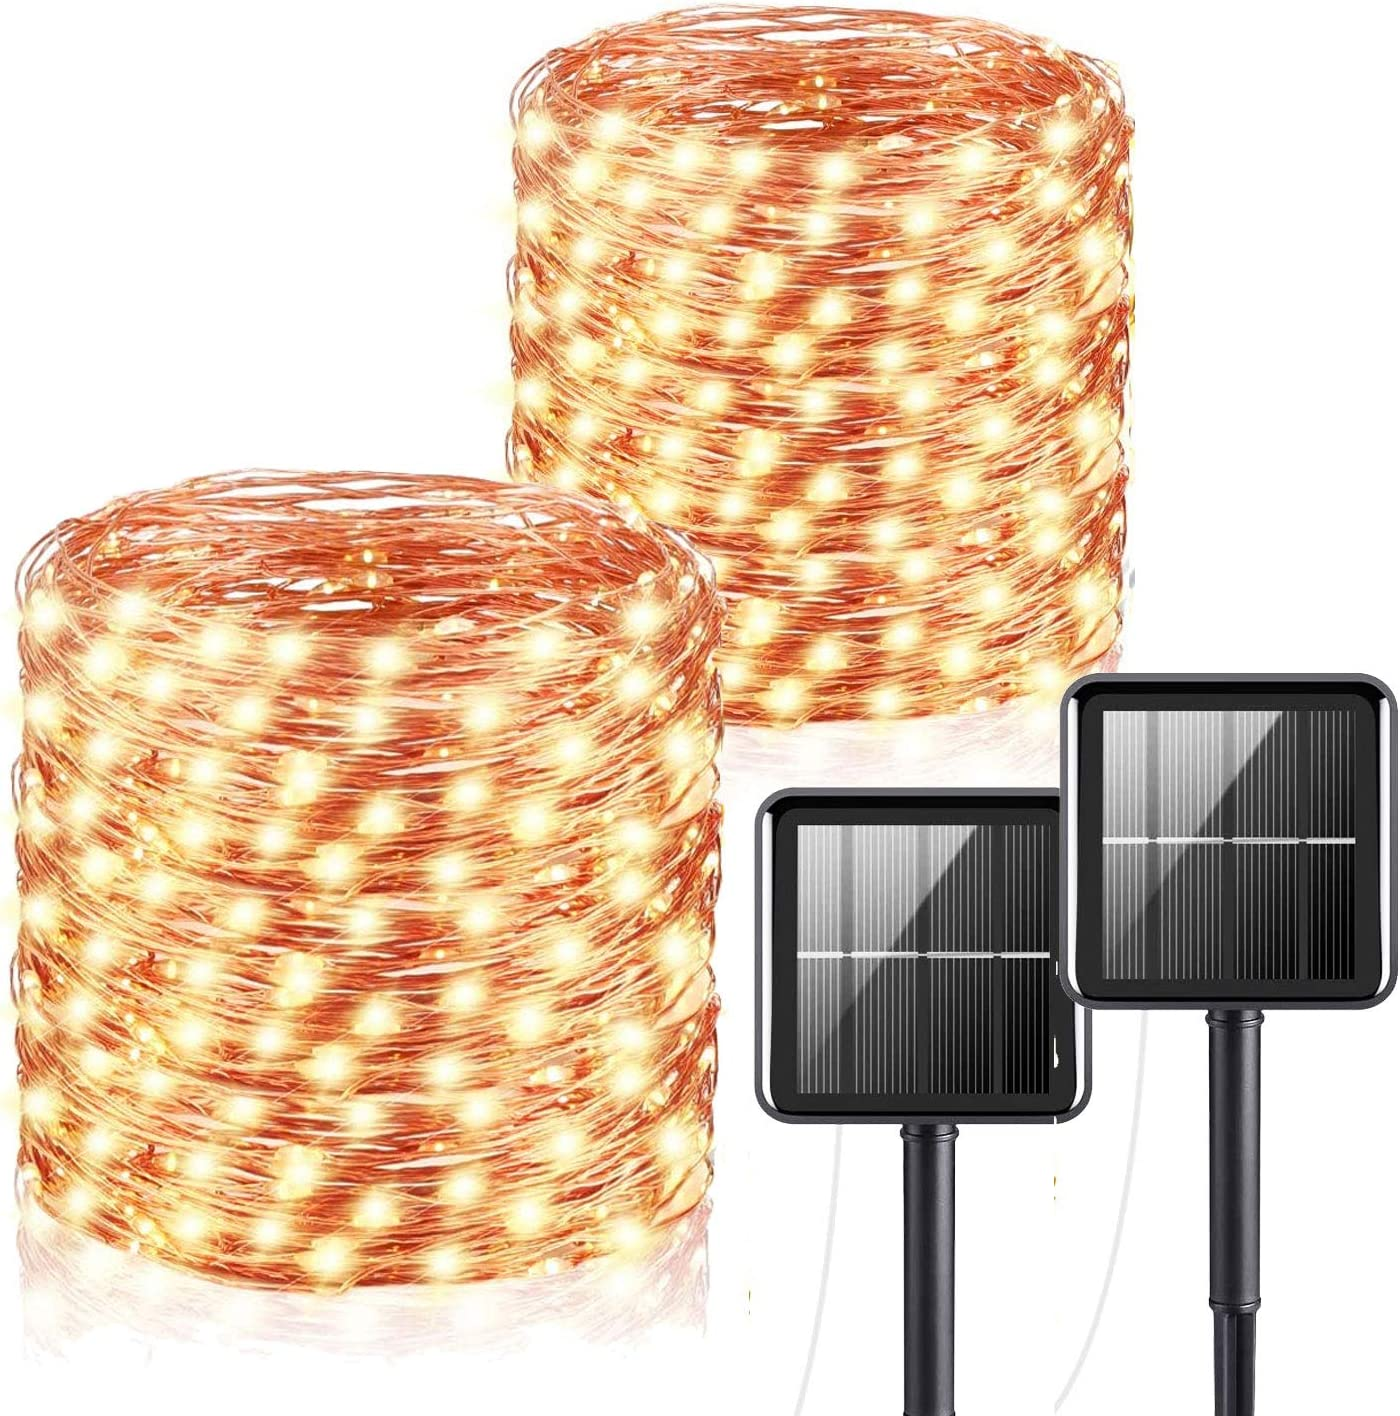 Solar String Lights Outdoor, Solar Fairy Lights 65ft/20m 200 LED 8 Modes Garden Solar Lights Waterproof Garden Lights Copper Wire Lighting for Patio Yard Party Wedding Christmas (2 Pack)